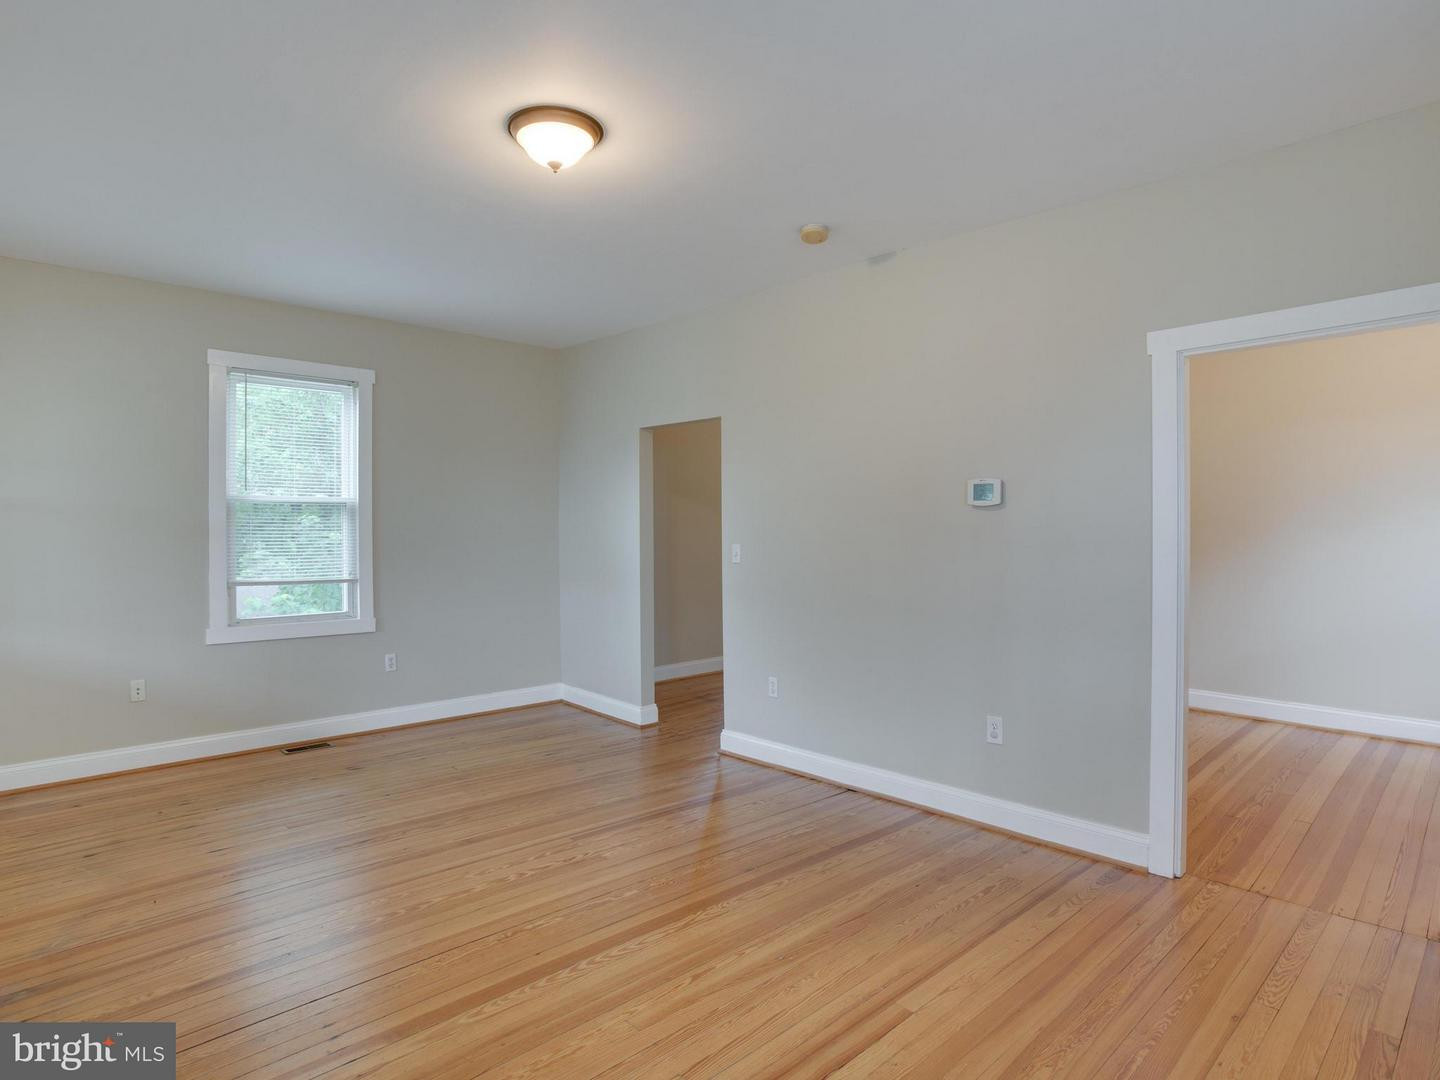 29 Awesome East Penn Hardwood Flooring Allentown Pa 2021 free download east penn hardwood flooring allentown pa of real estate for sale 7624 c st chesapeake beach md 20732 mls for view photo slide show 30 30 photo 1